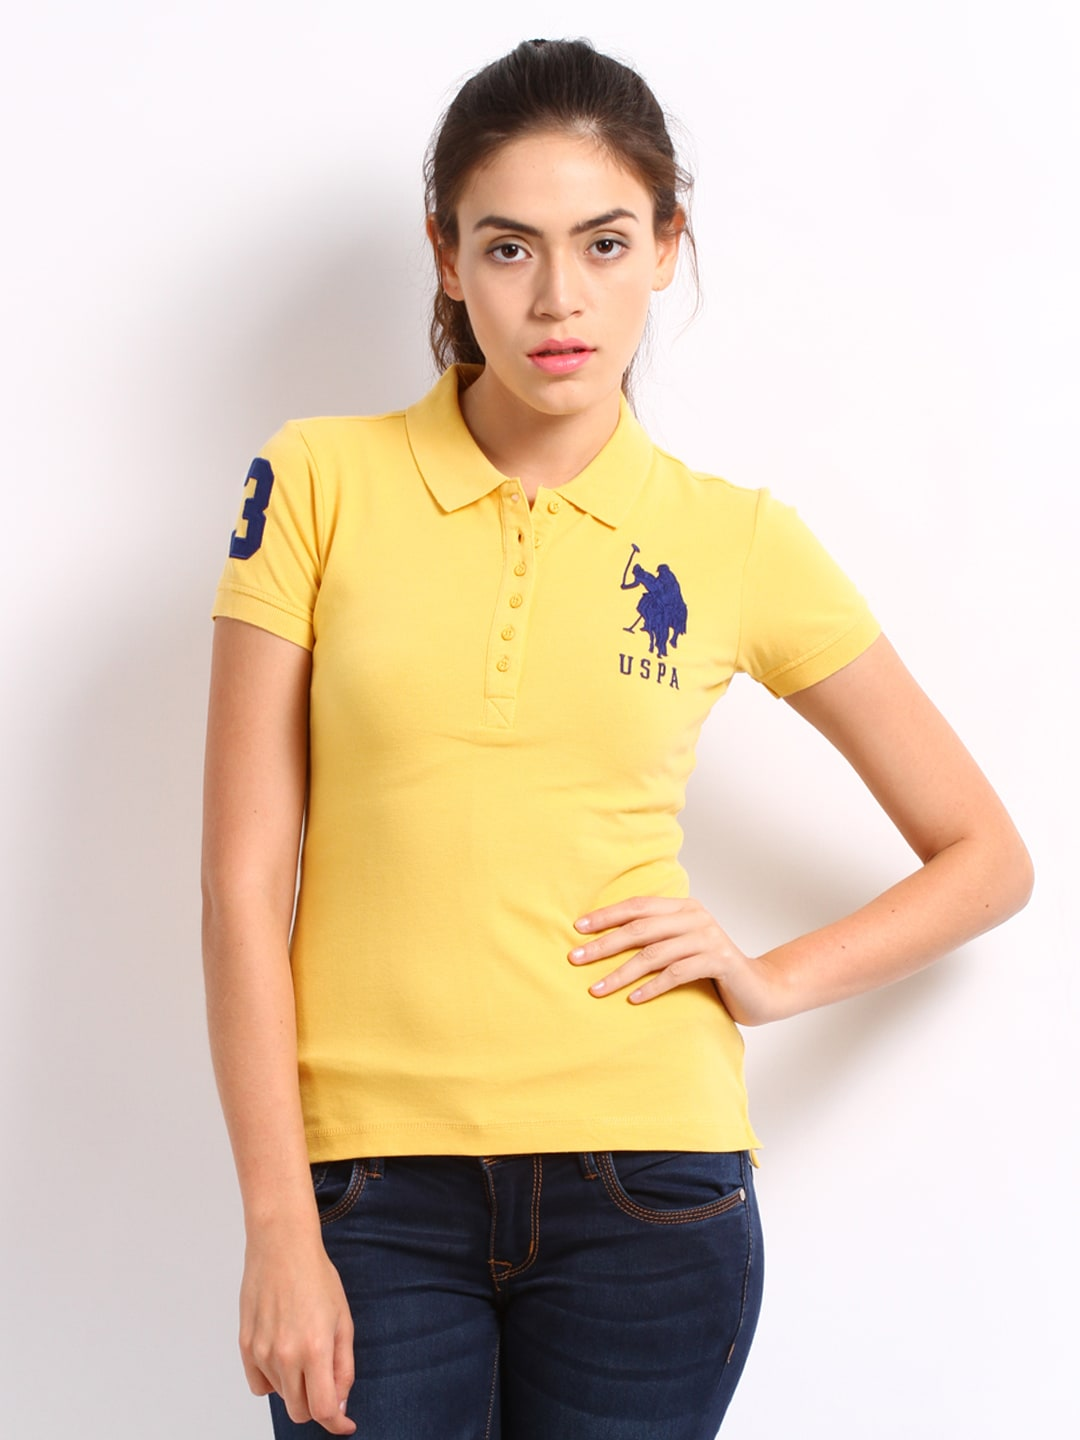 a0c87b2bd93753 Us polo assn uwts0230 U S Polo Assn Women Yellow Polo T Shirt- Price in  India